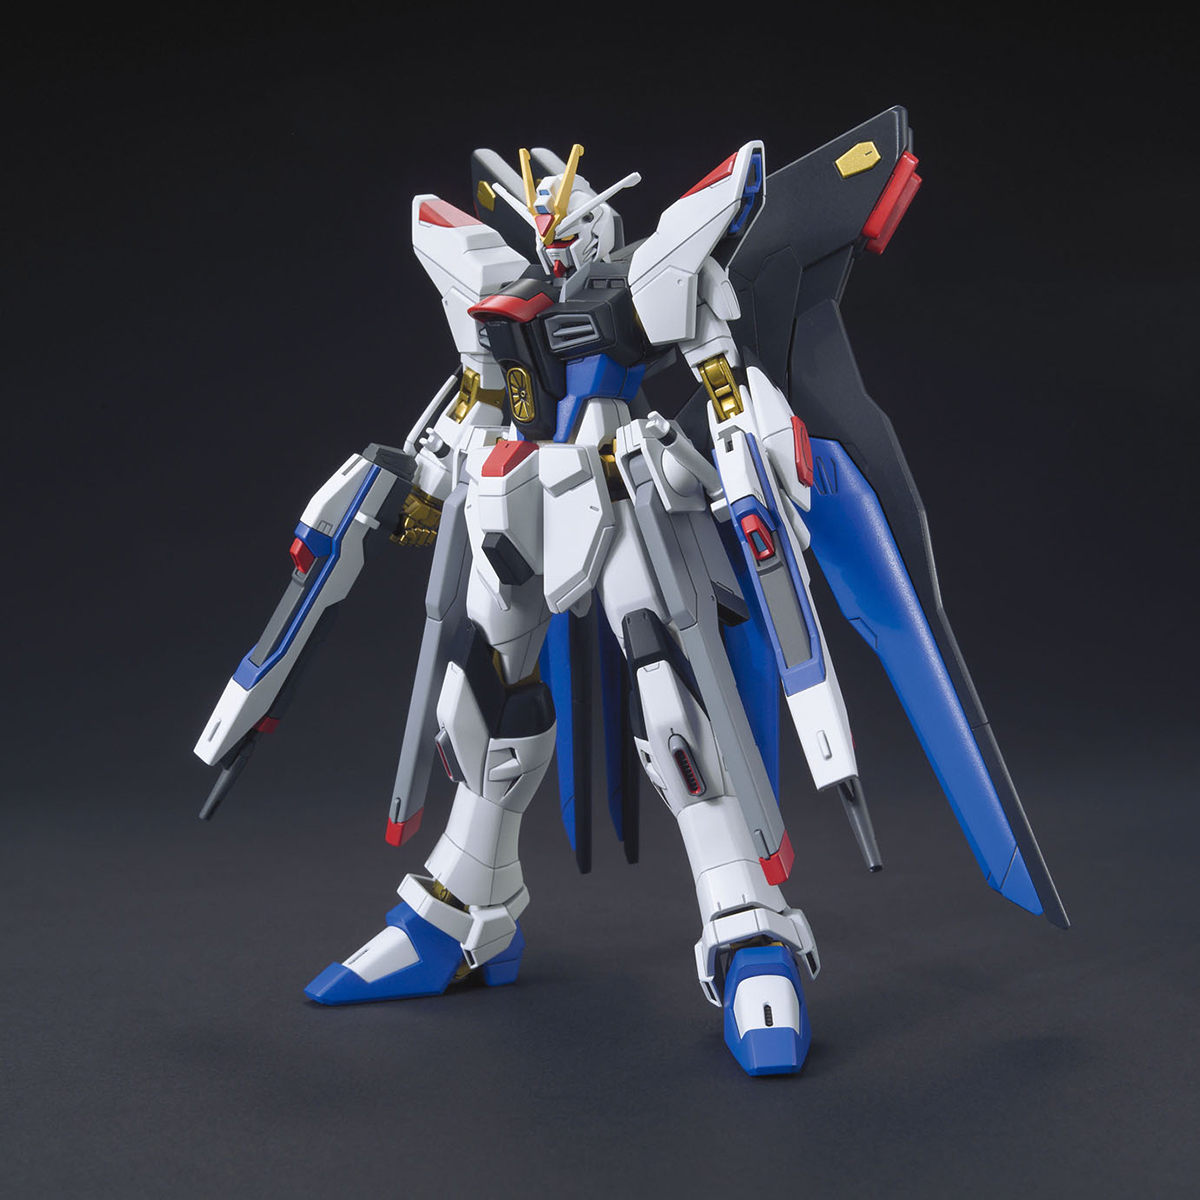 HGCE 1/144 REVIVE ZGMF-X20A ストライクフリーダムガンダム [Strike Freedom Gundam] 0209427 5055610 4573102556103 4549660094272